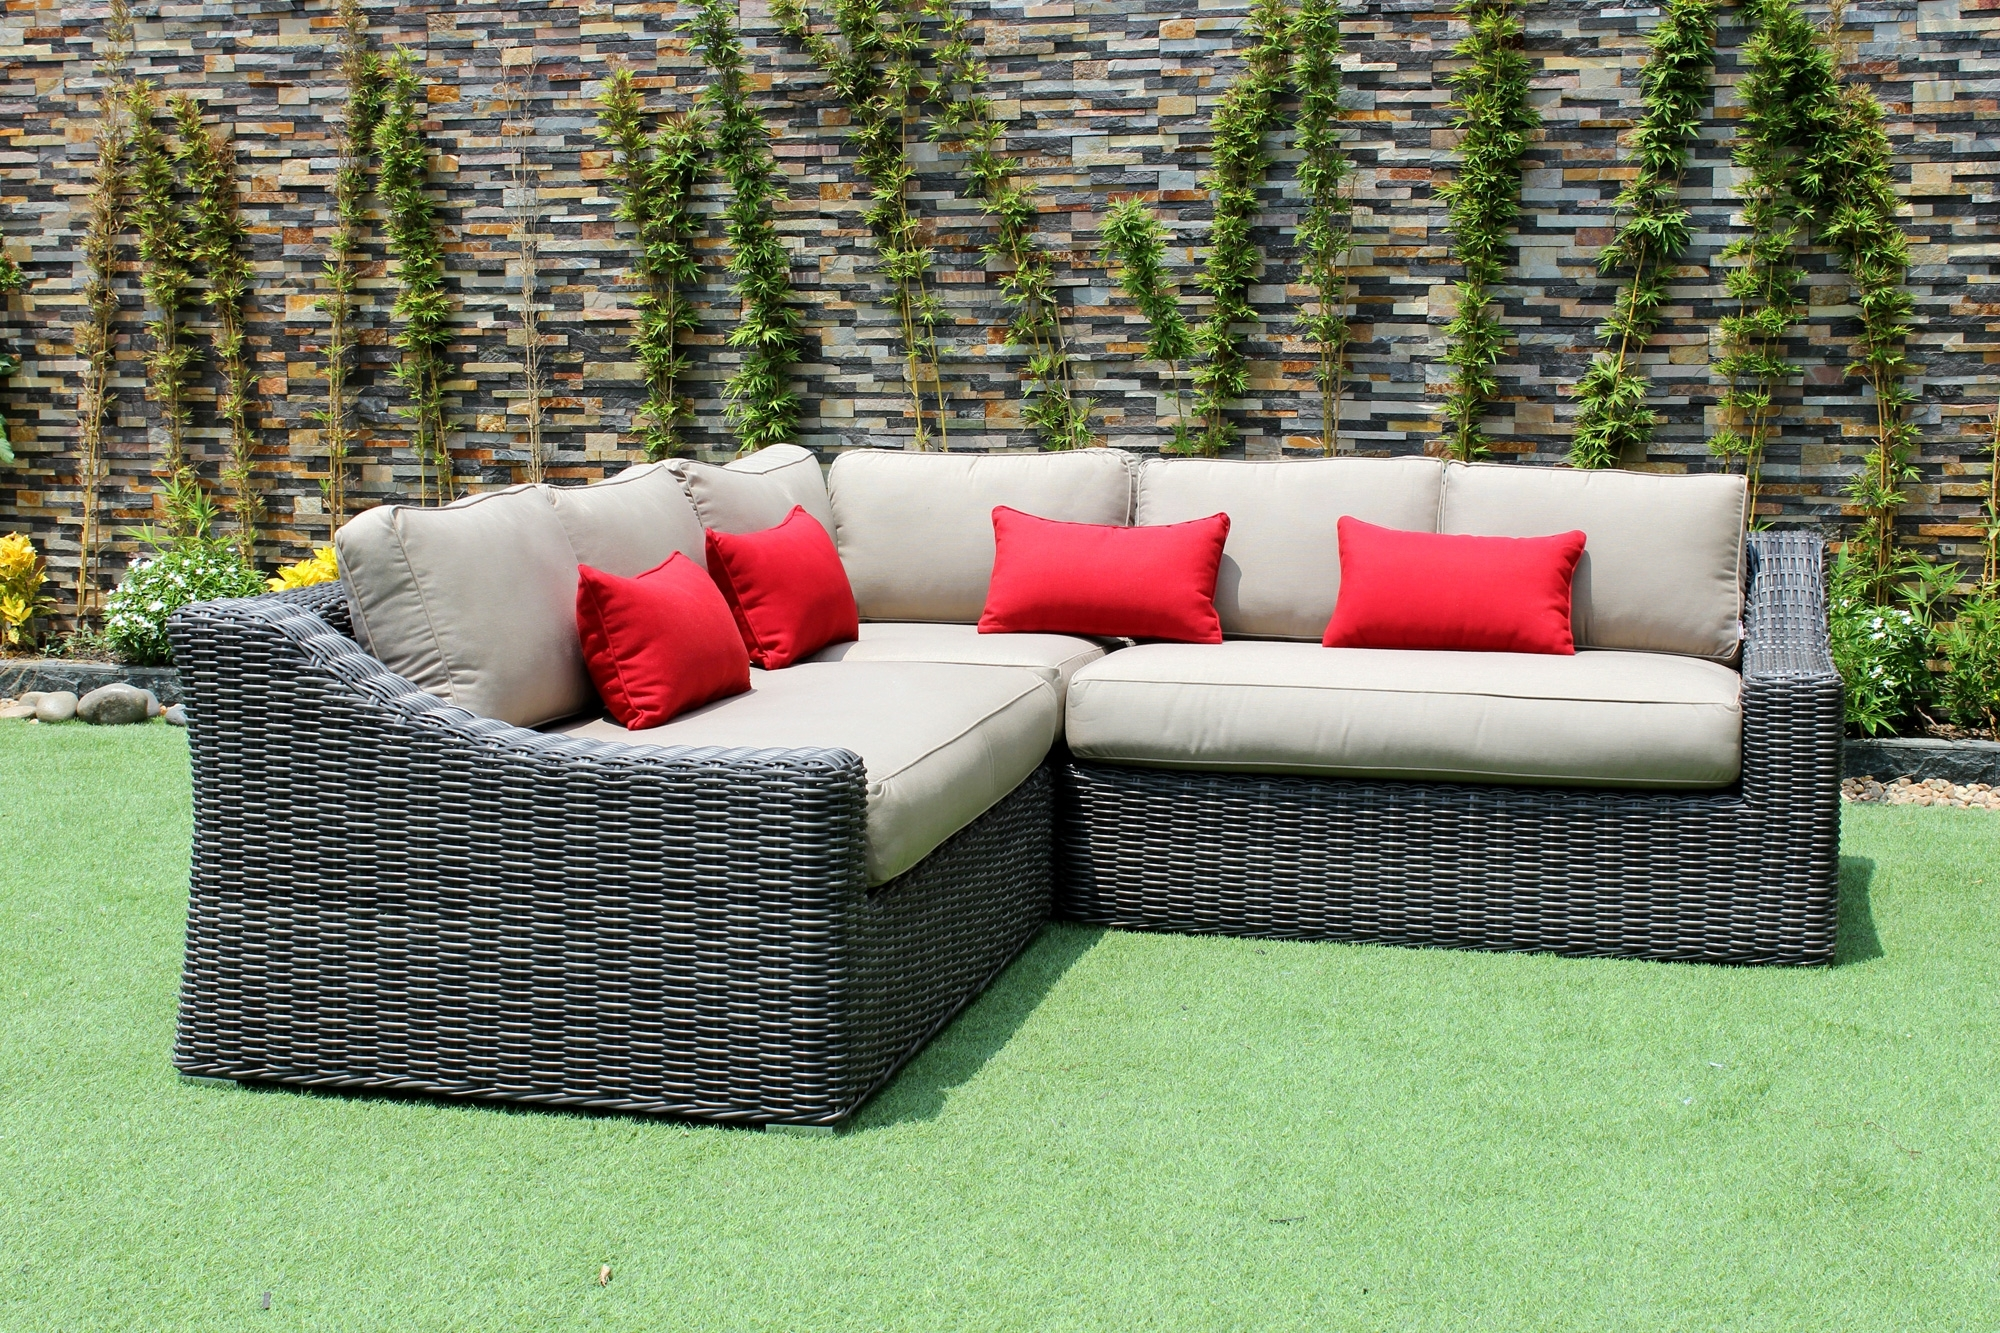 Fashionable Nanaimo Sectional Sofas Inside Marseille Outdoor Patio Wicker Sunbrella Corner Sectional Sofa (View 3 of 15)